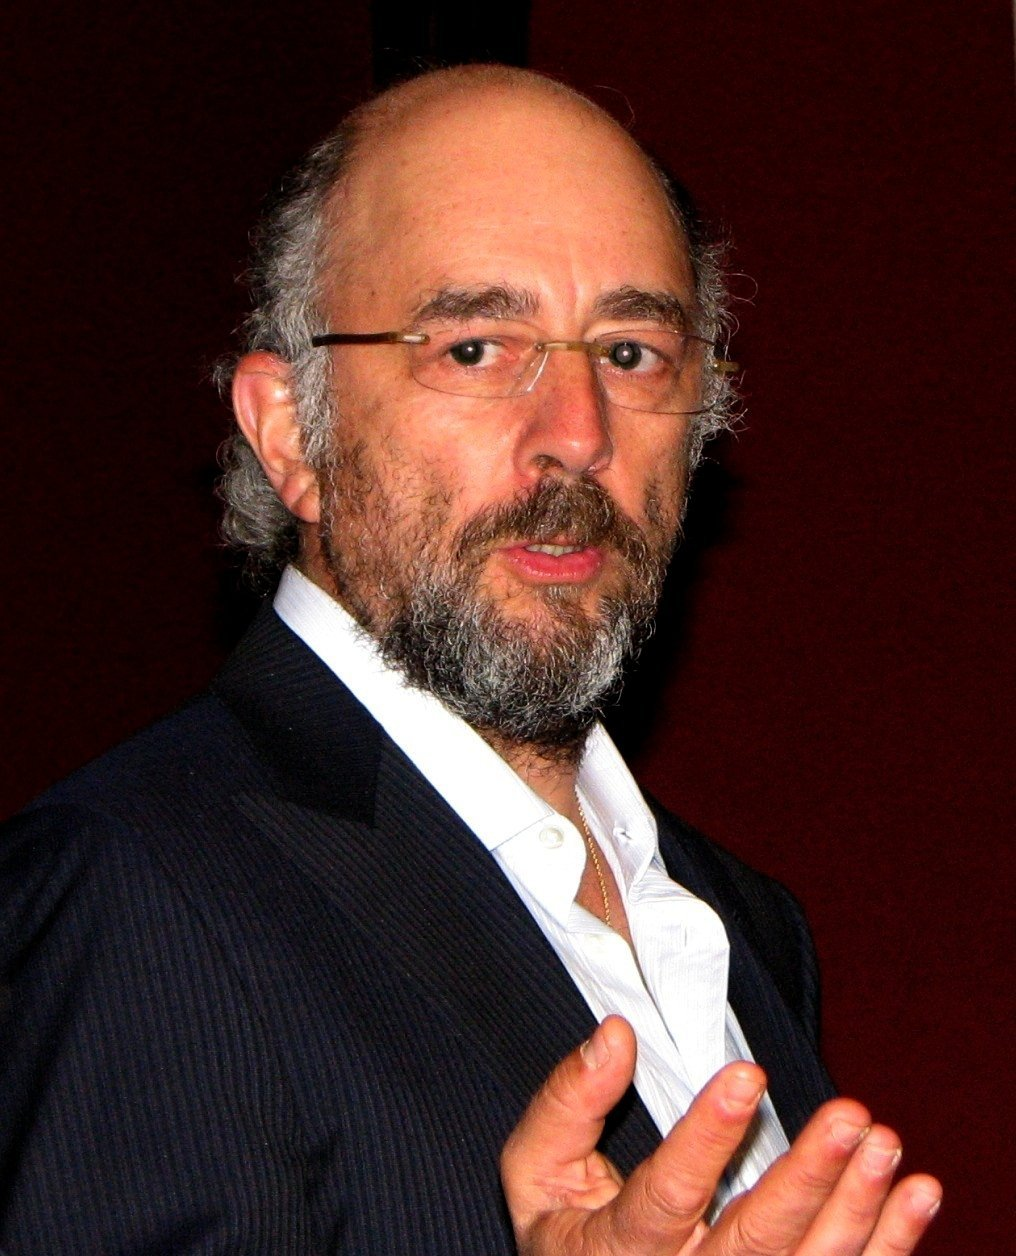 Richard Schiff speaking at the Oxford Union in May 2009. | Source: Wikimedia Commons